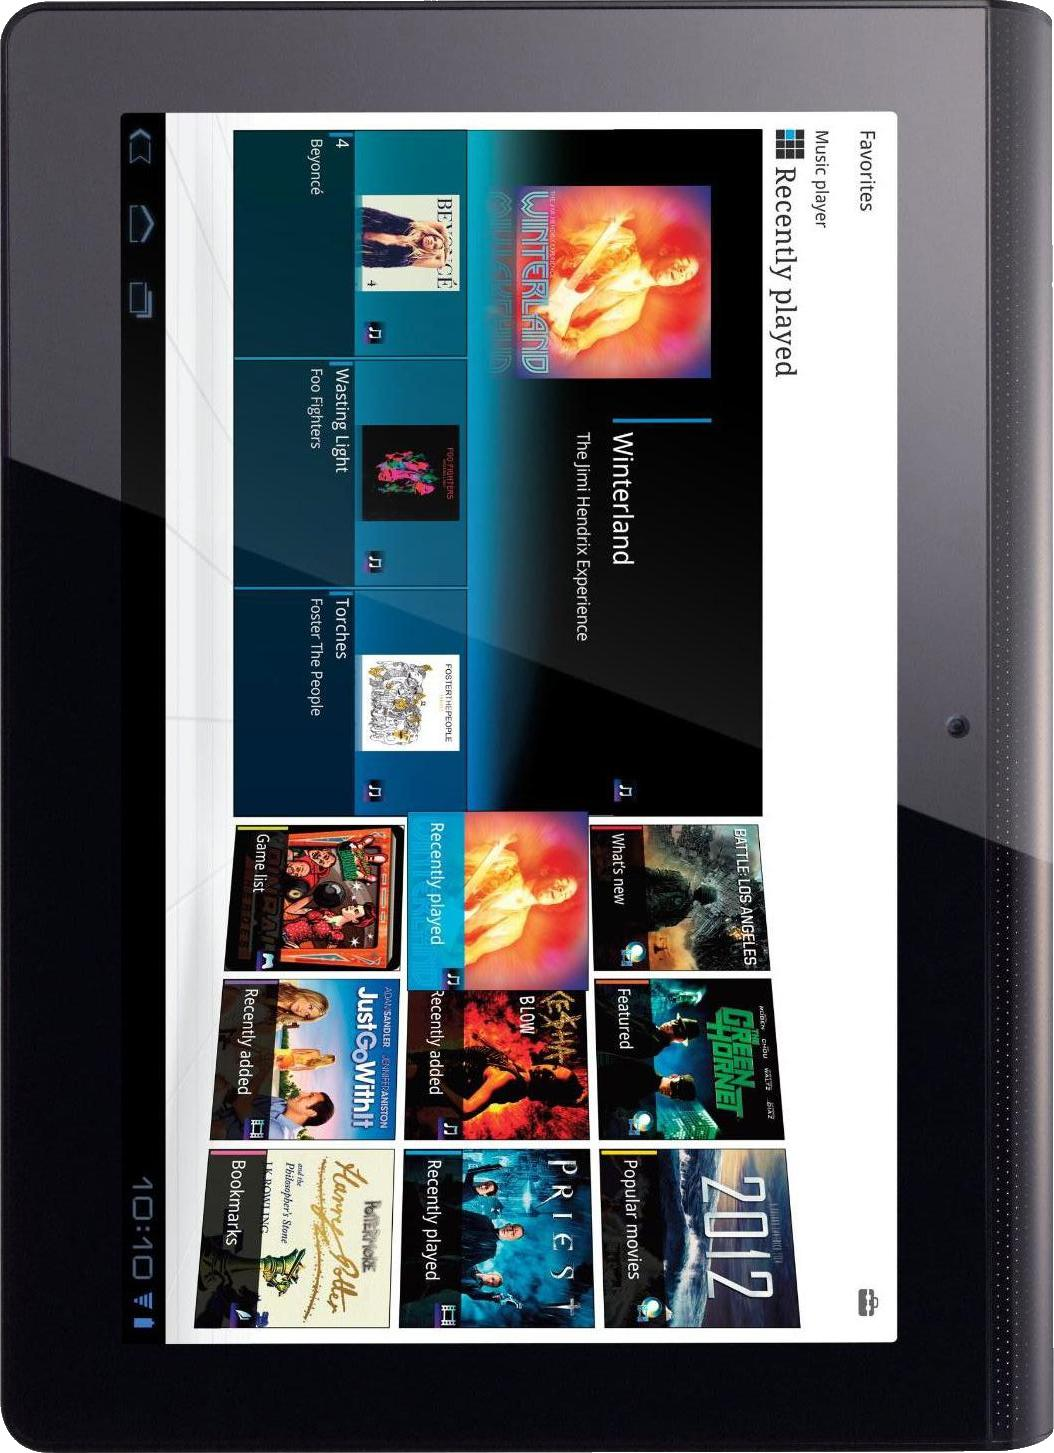 Sony Tablet S 3G 16GB